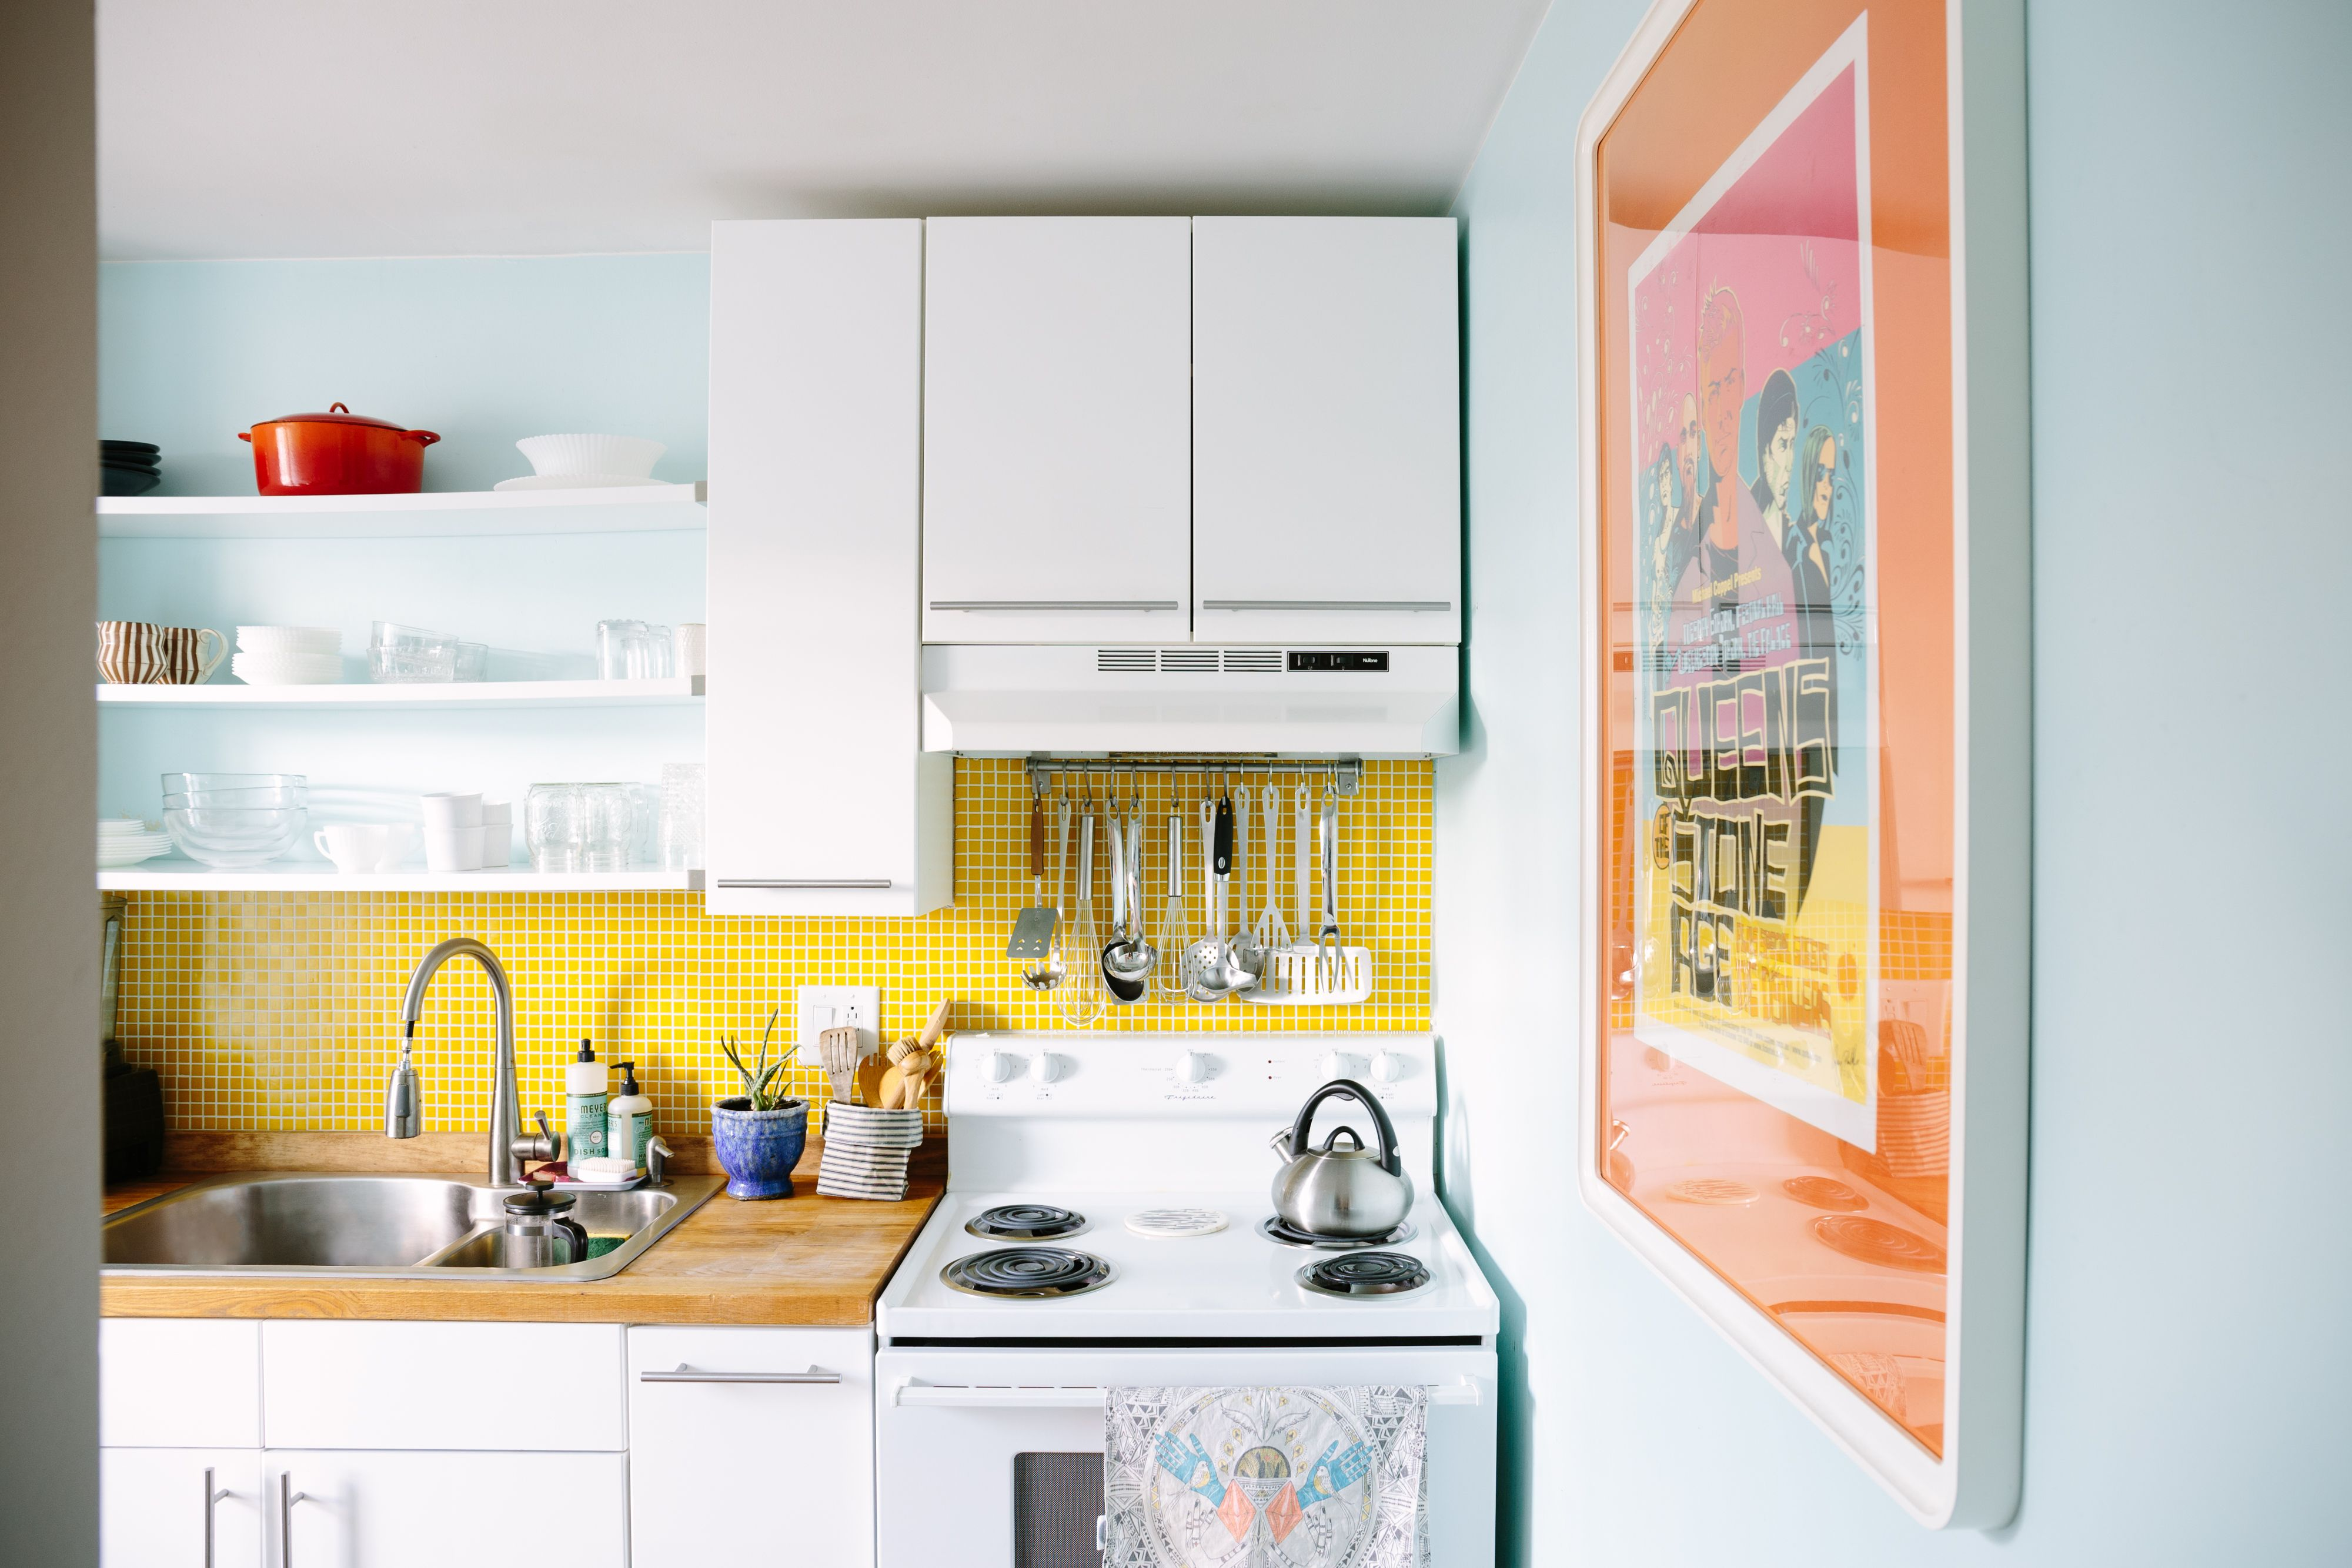 and Stylish Product Swaps for a Less Wasteful Home